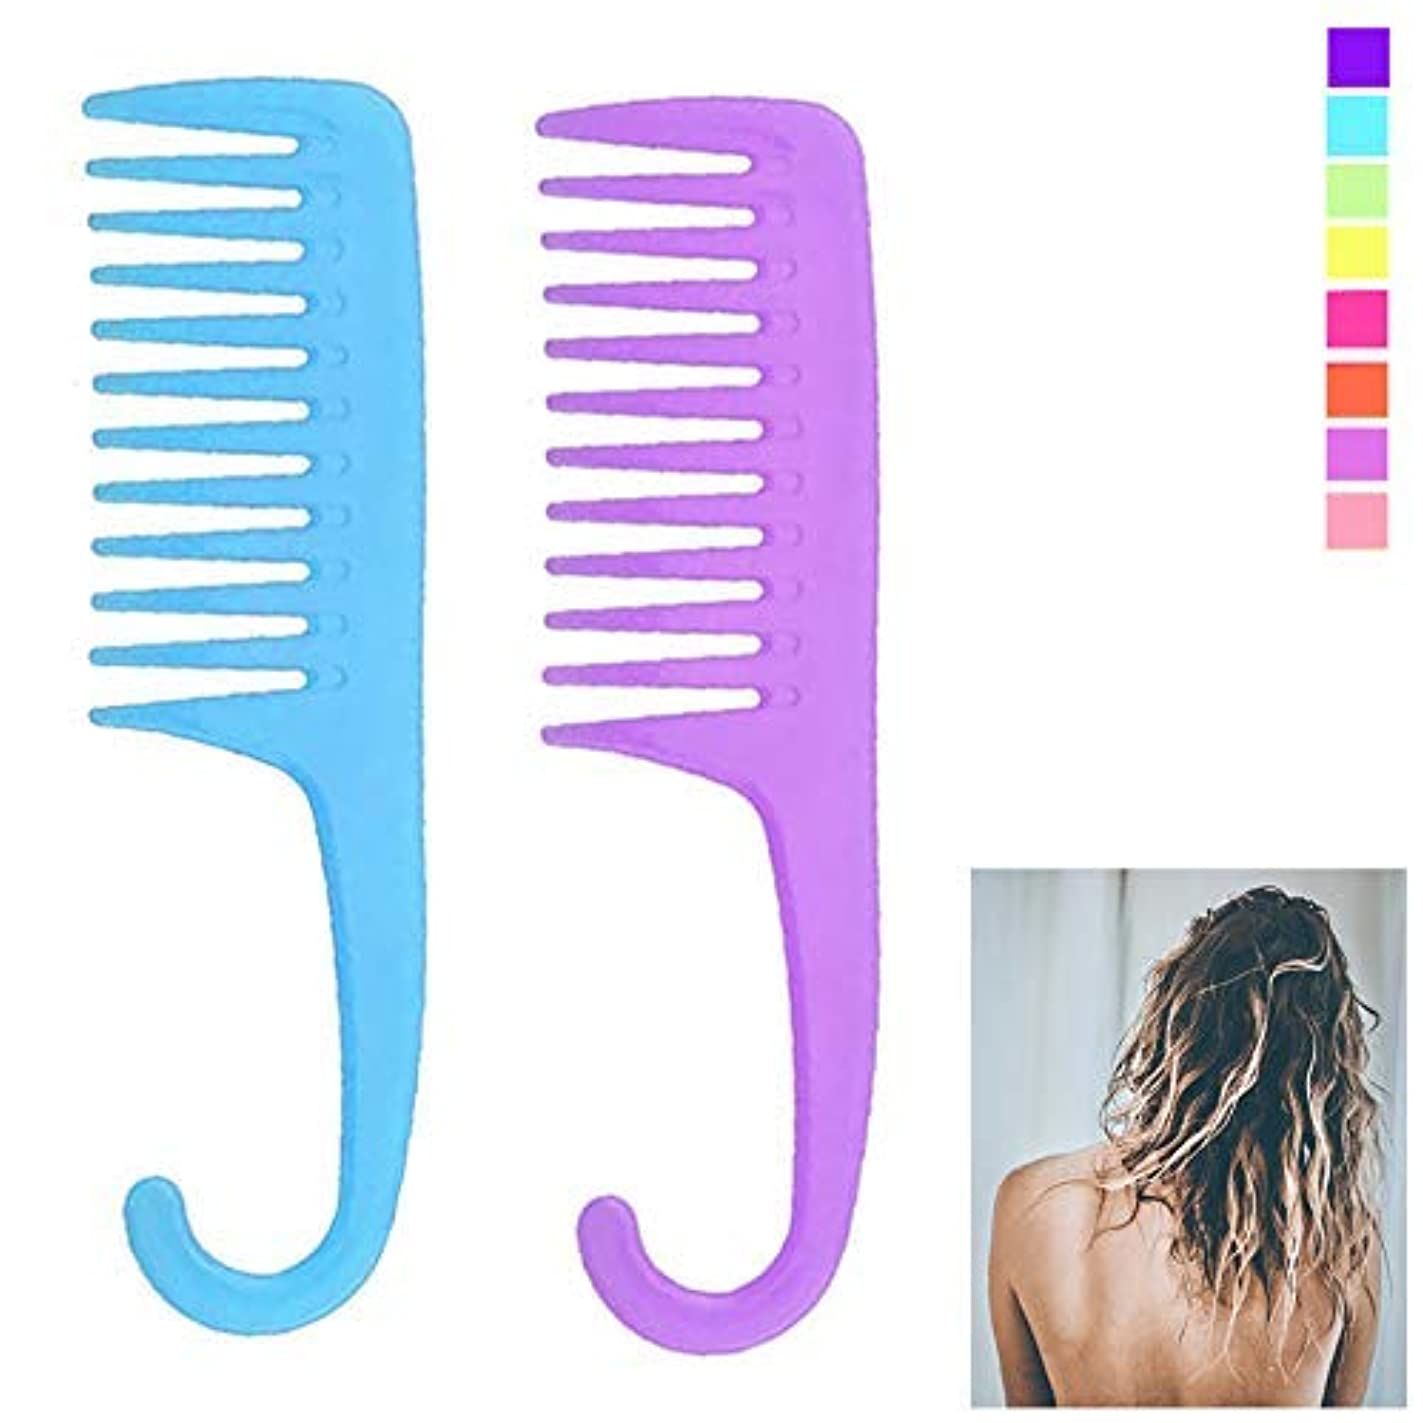 絶滅した役に立つピース2 Shower Combs Hair Wide Tooth Dry Wet Gently Detangles Thick Long Durable Salon [並行輸入品]